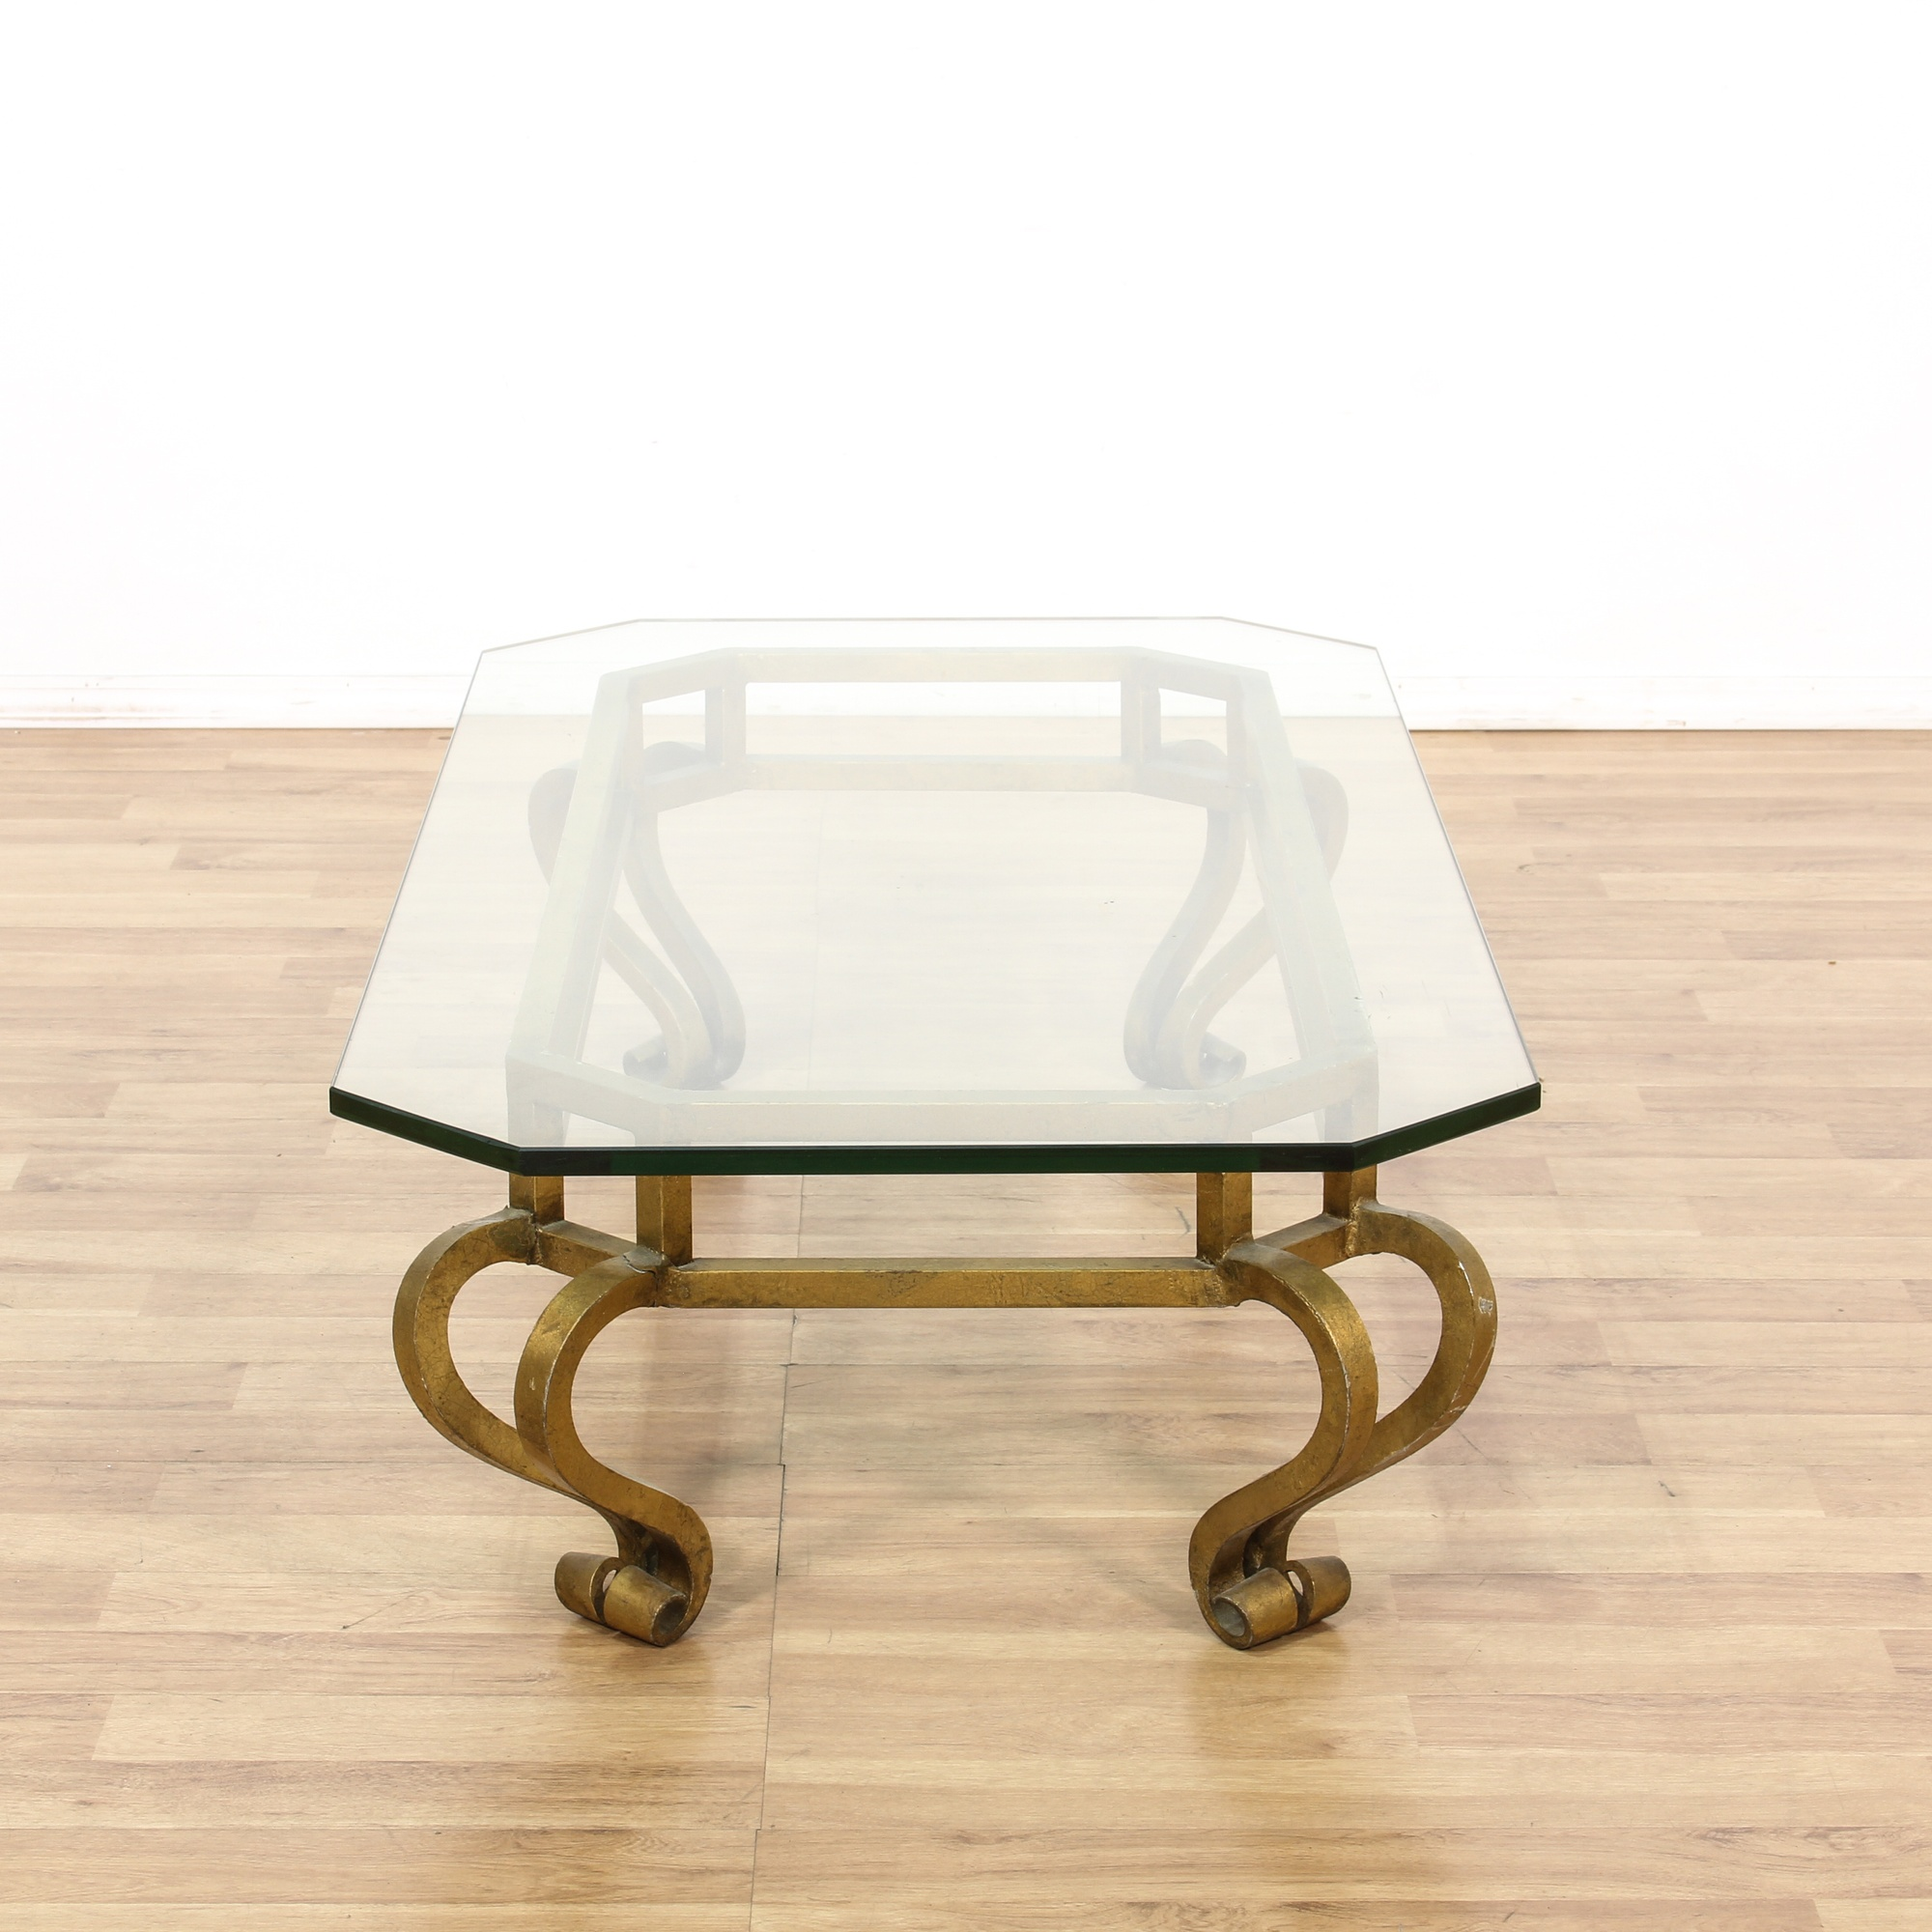 Antique Gold And Glass Coffee Table: Gold Metal Frame Glass Top Coffee Table